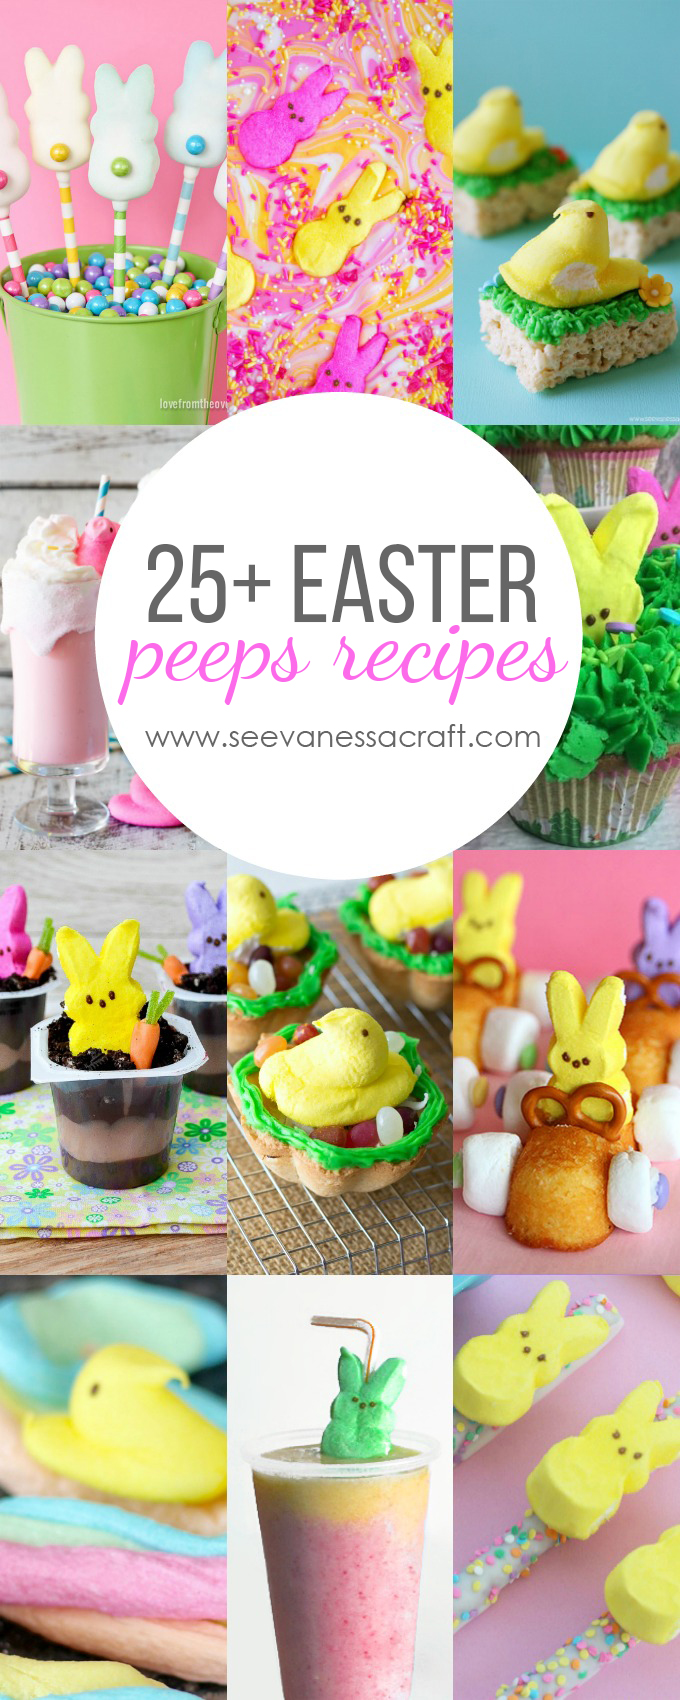 Over 25 Easter Peeps Recipes